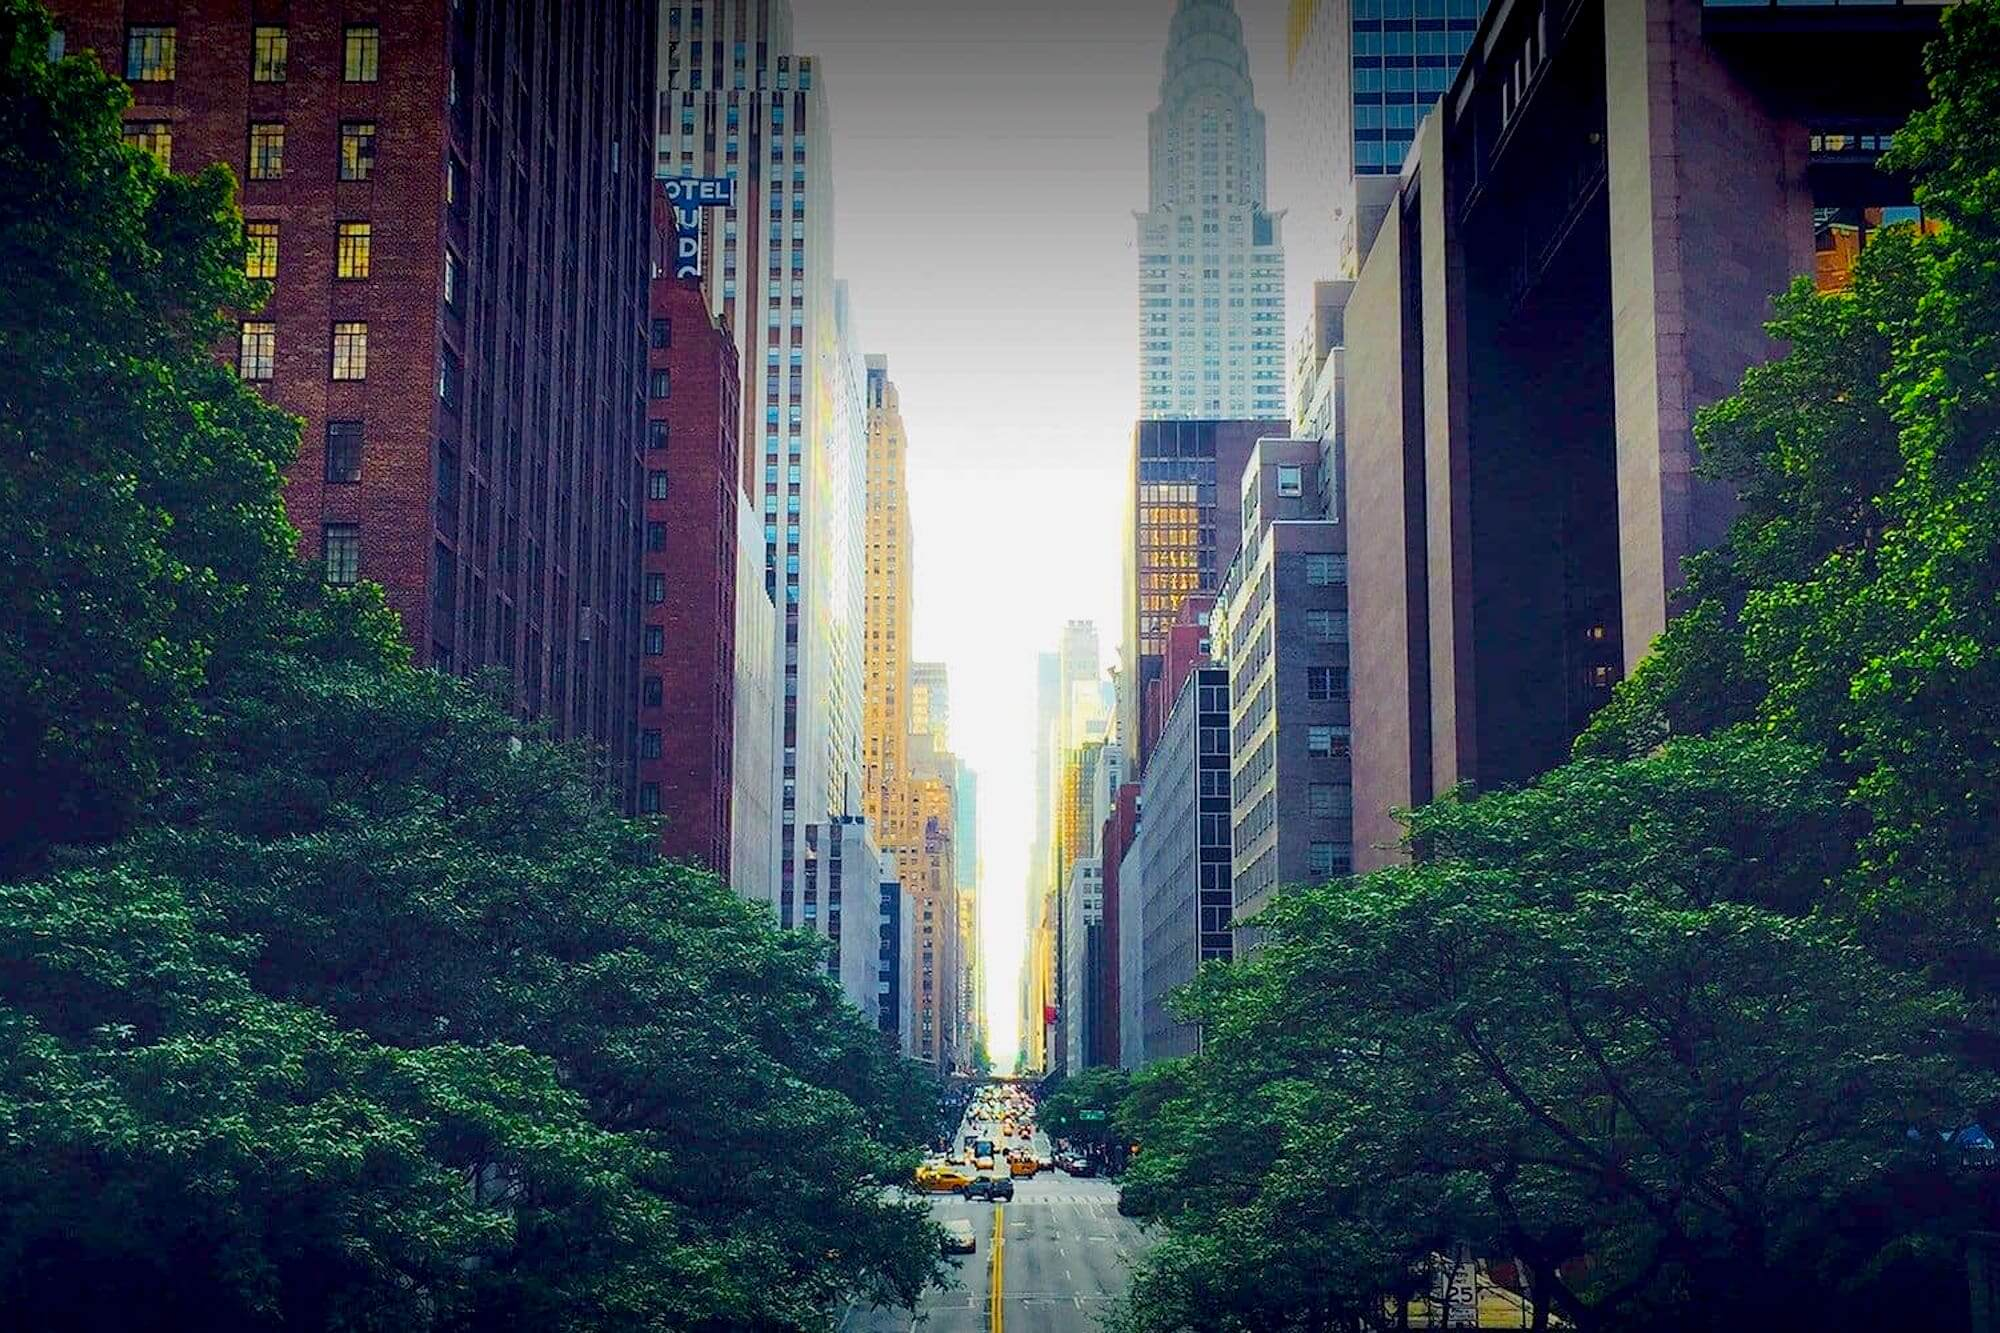 New York Street View